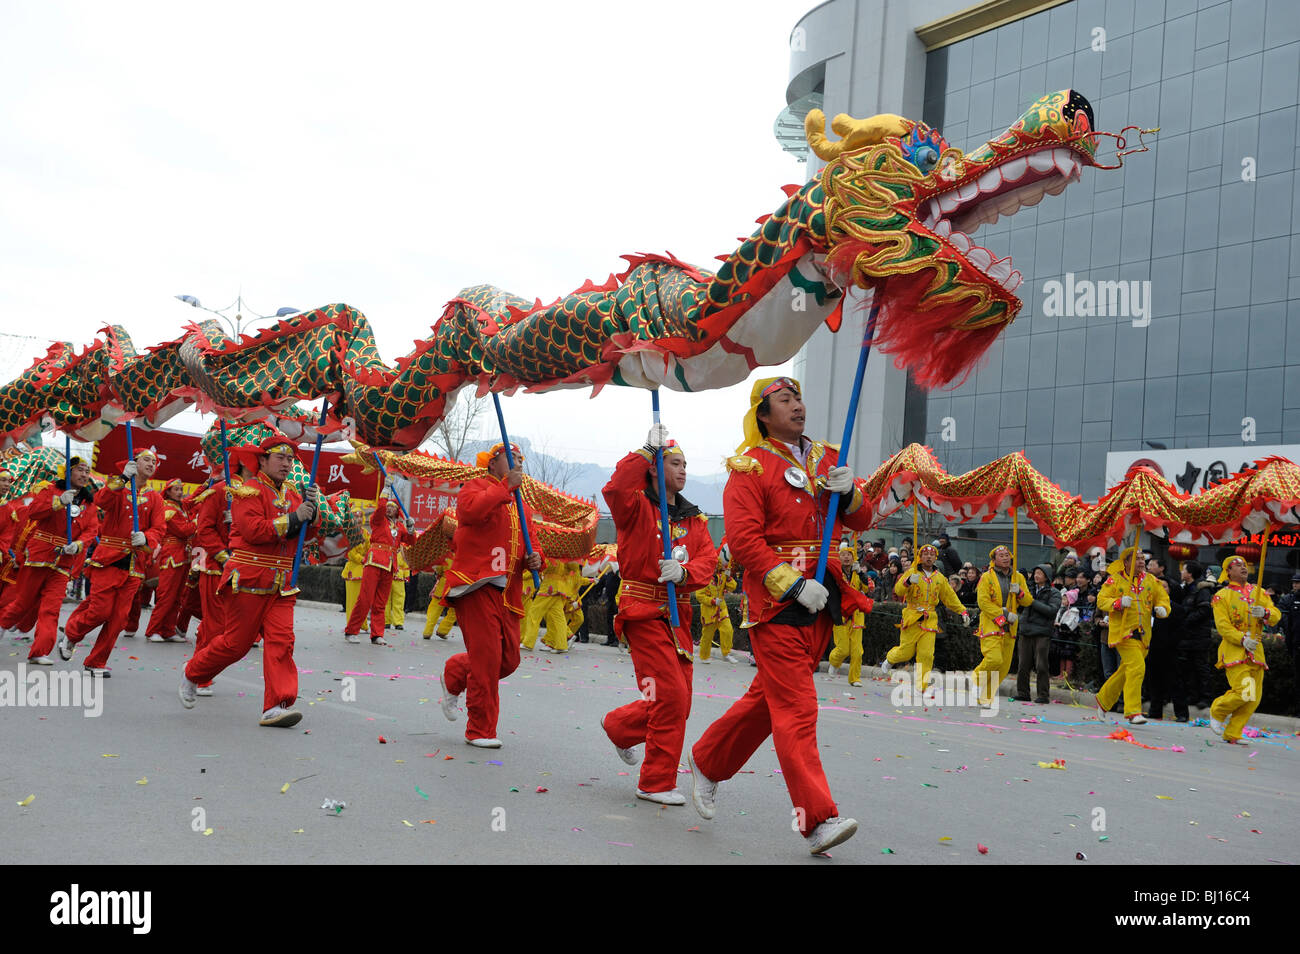 00aa518a3 People perform traditional dragon dancing during Yuanxiao Festival or the  Lantern Festival in Yuxian, Hebei, China. 28-Feb-2010